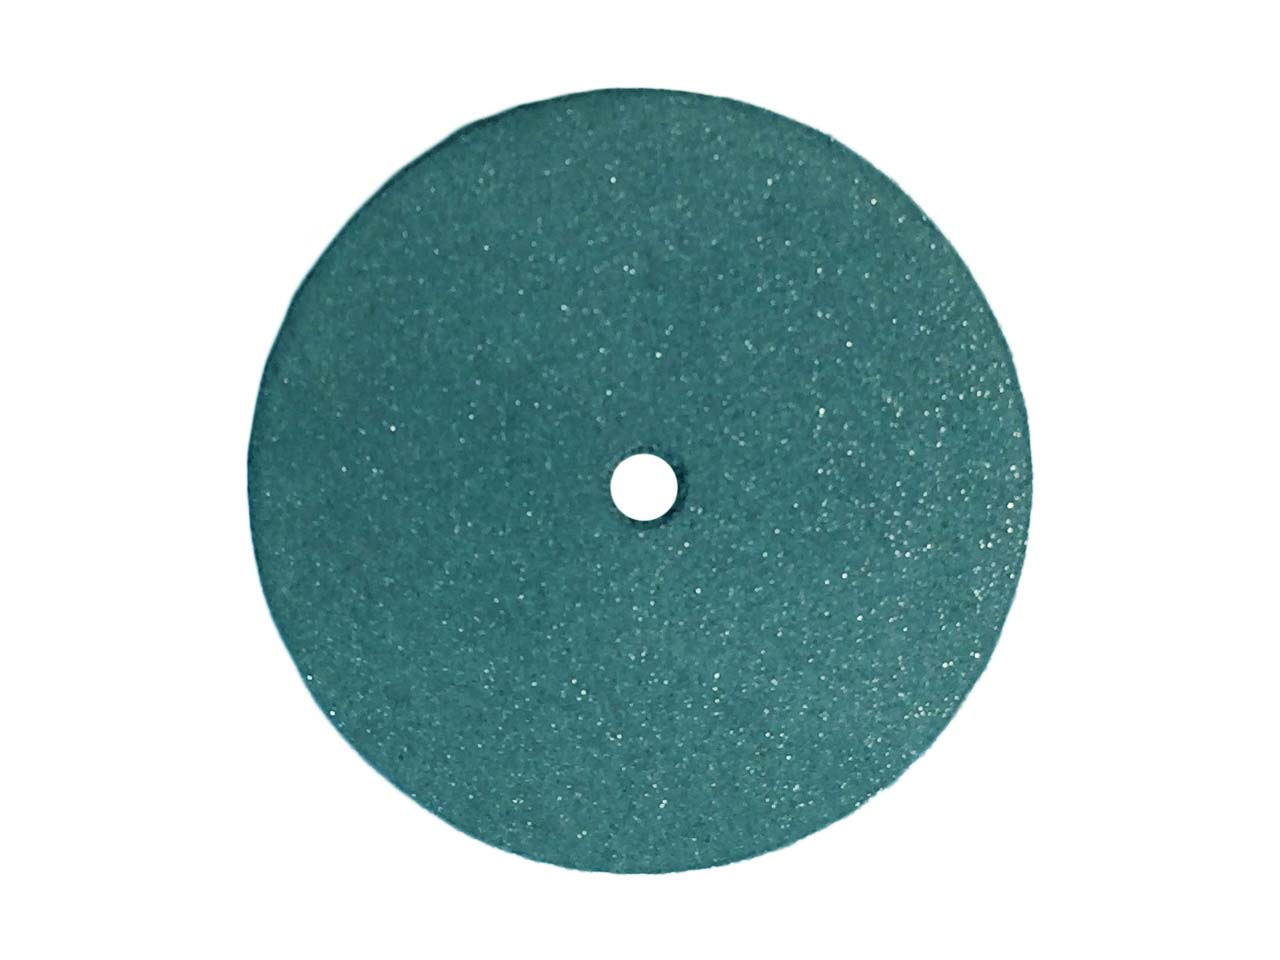 Meulette caoutchouc ronde, bleue, grain super brillant, dimensions 22 x 3,1 mm, n° 5004, Dedeco